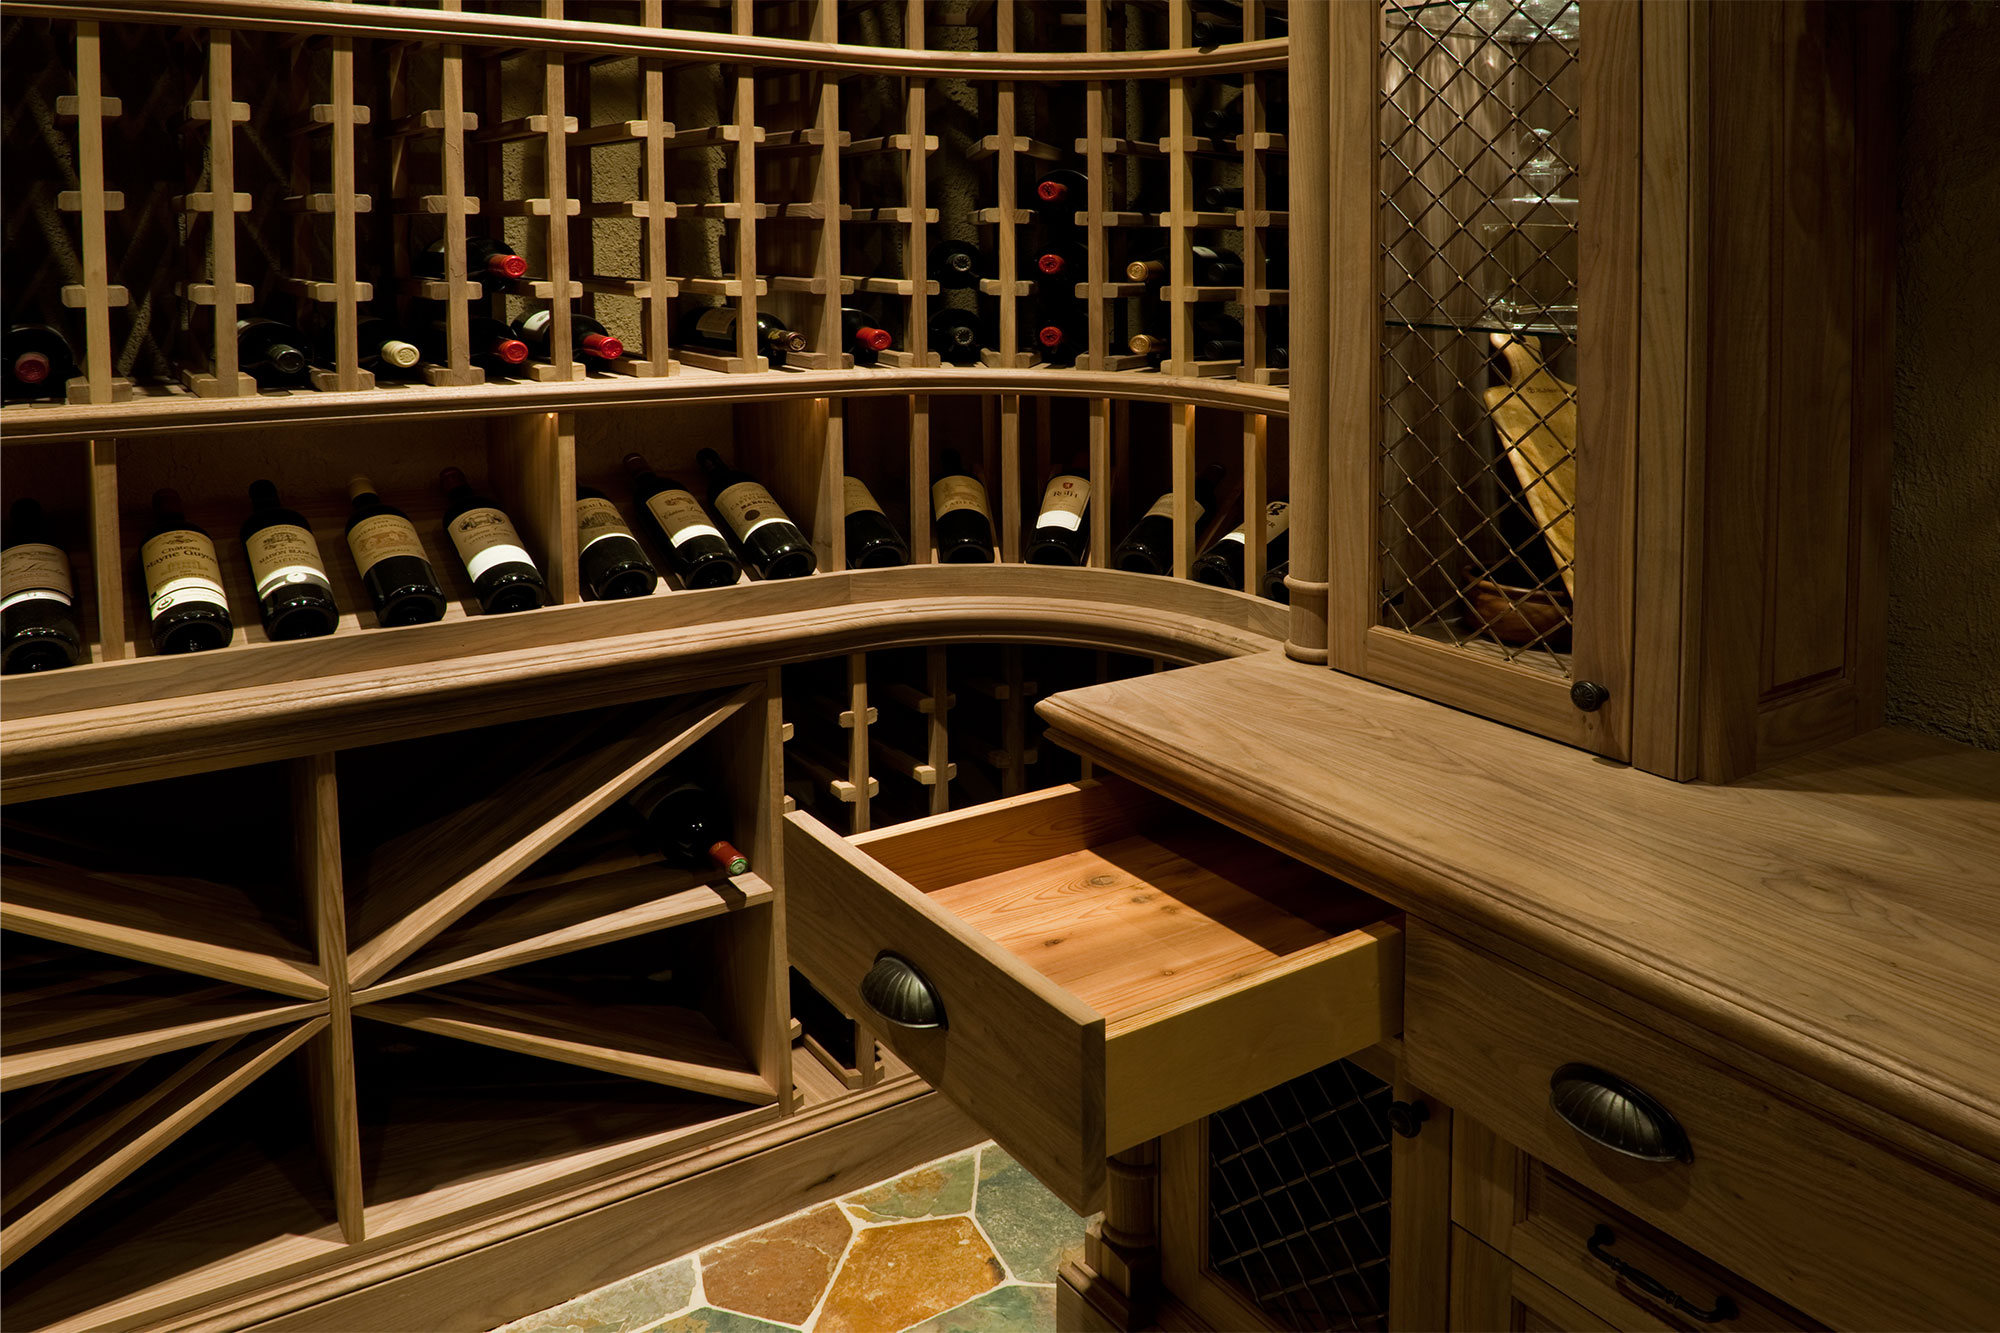 wine room furniture. Elegant Cedar Finishing Inside Furniture-grade, Wine Cellar Drawers \u2022 WC2-06 Room Furniture O